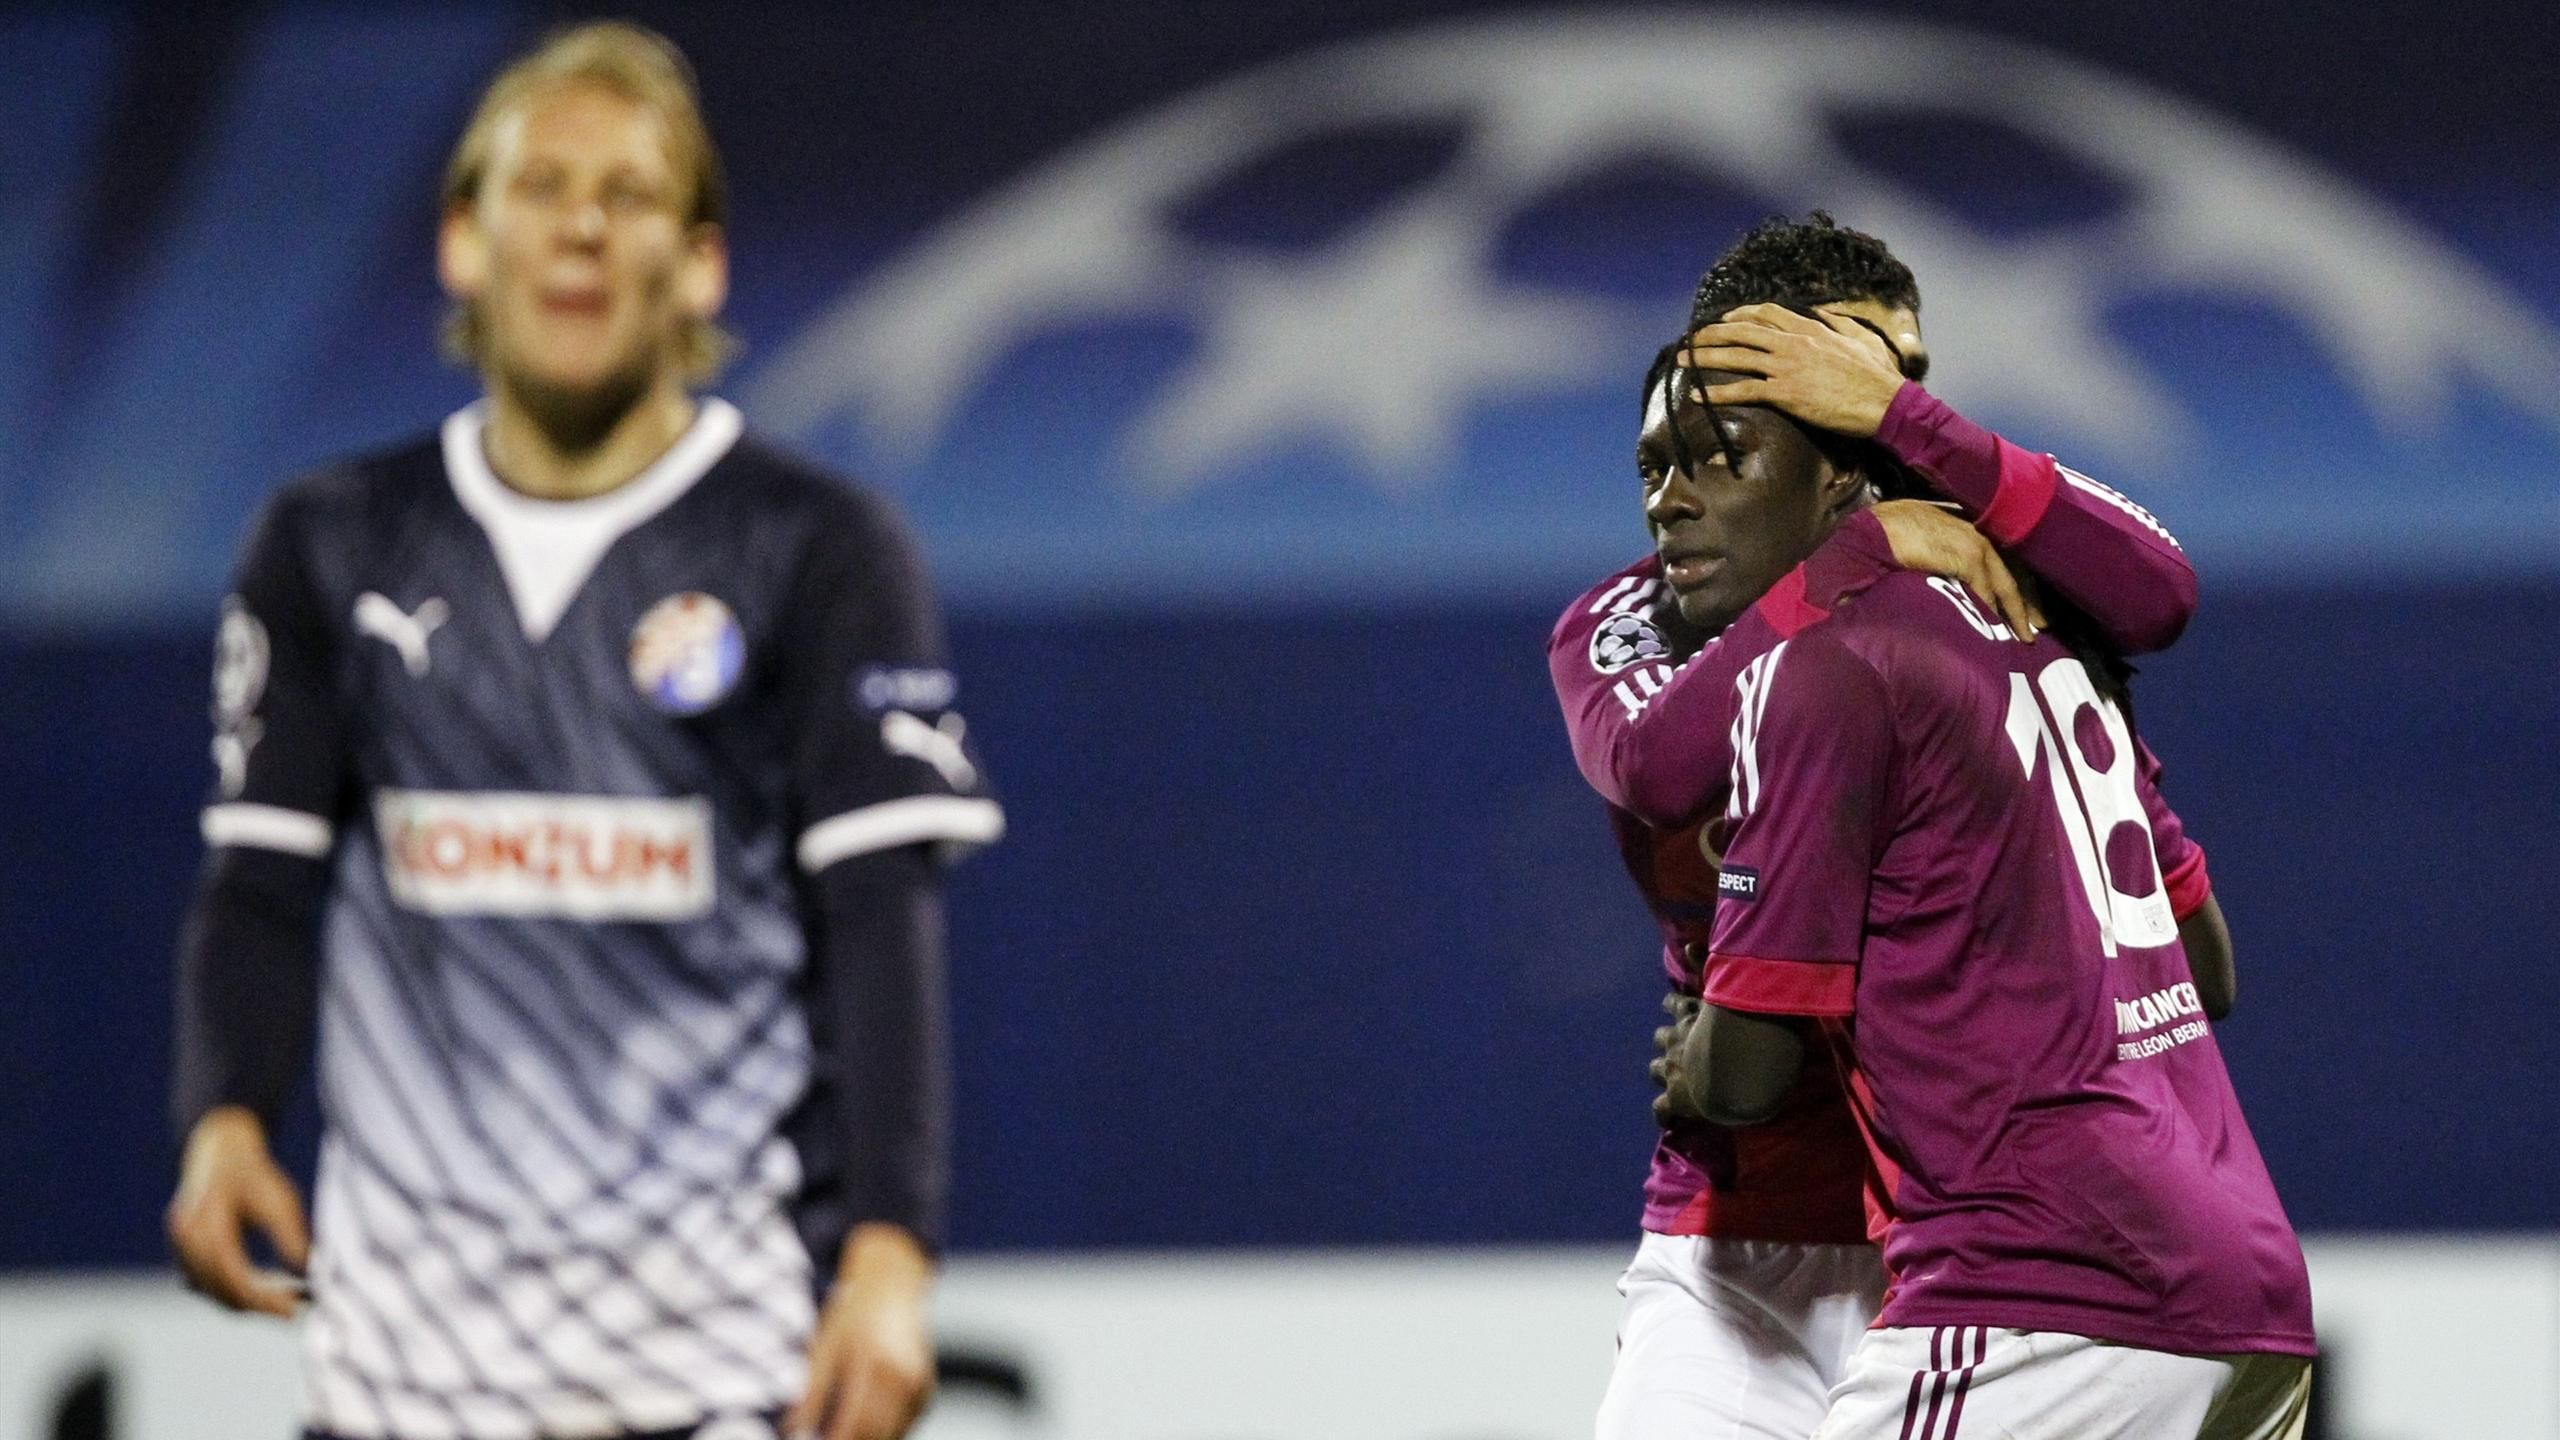 Lyon's Bafetimbi Gomis (R) celebrates after scoring against Dinamo Zagreb during their Champions League Group D clash